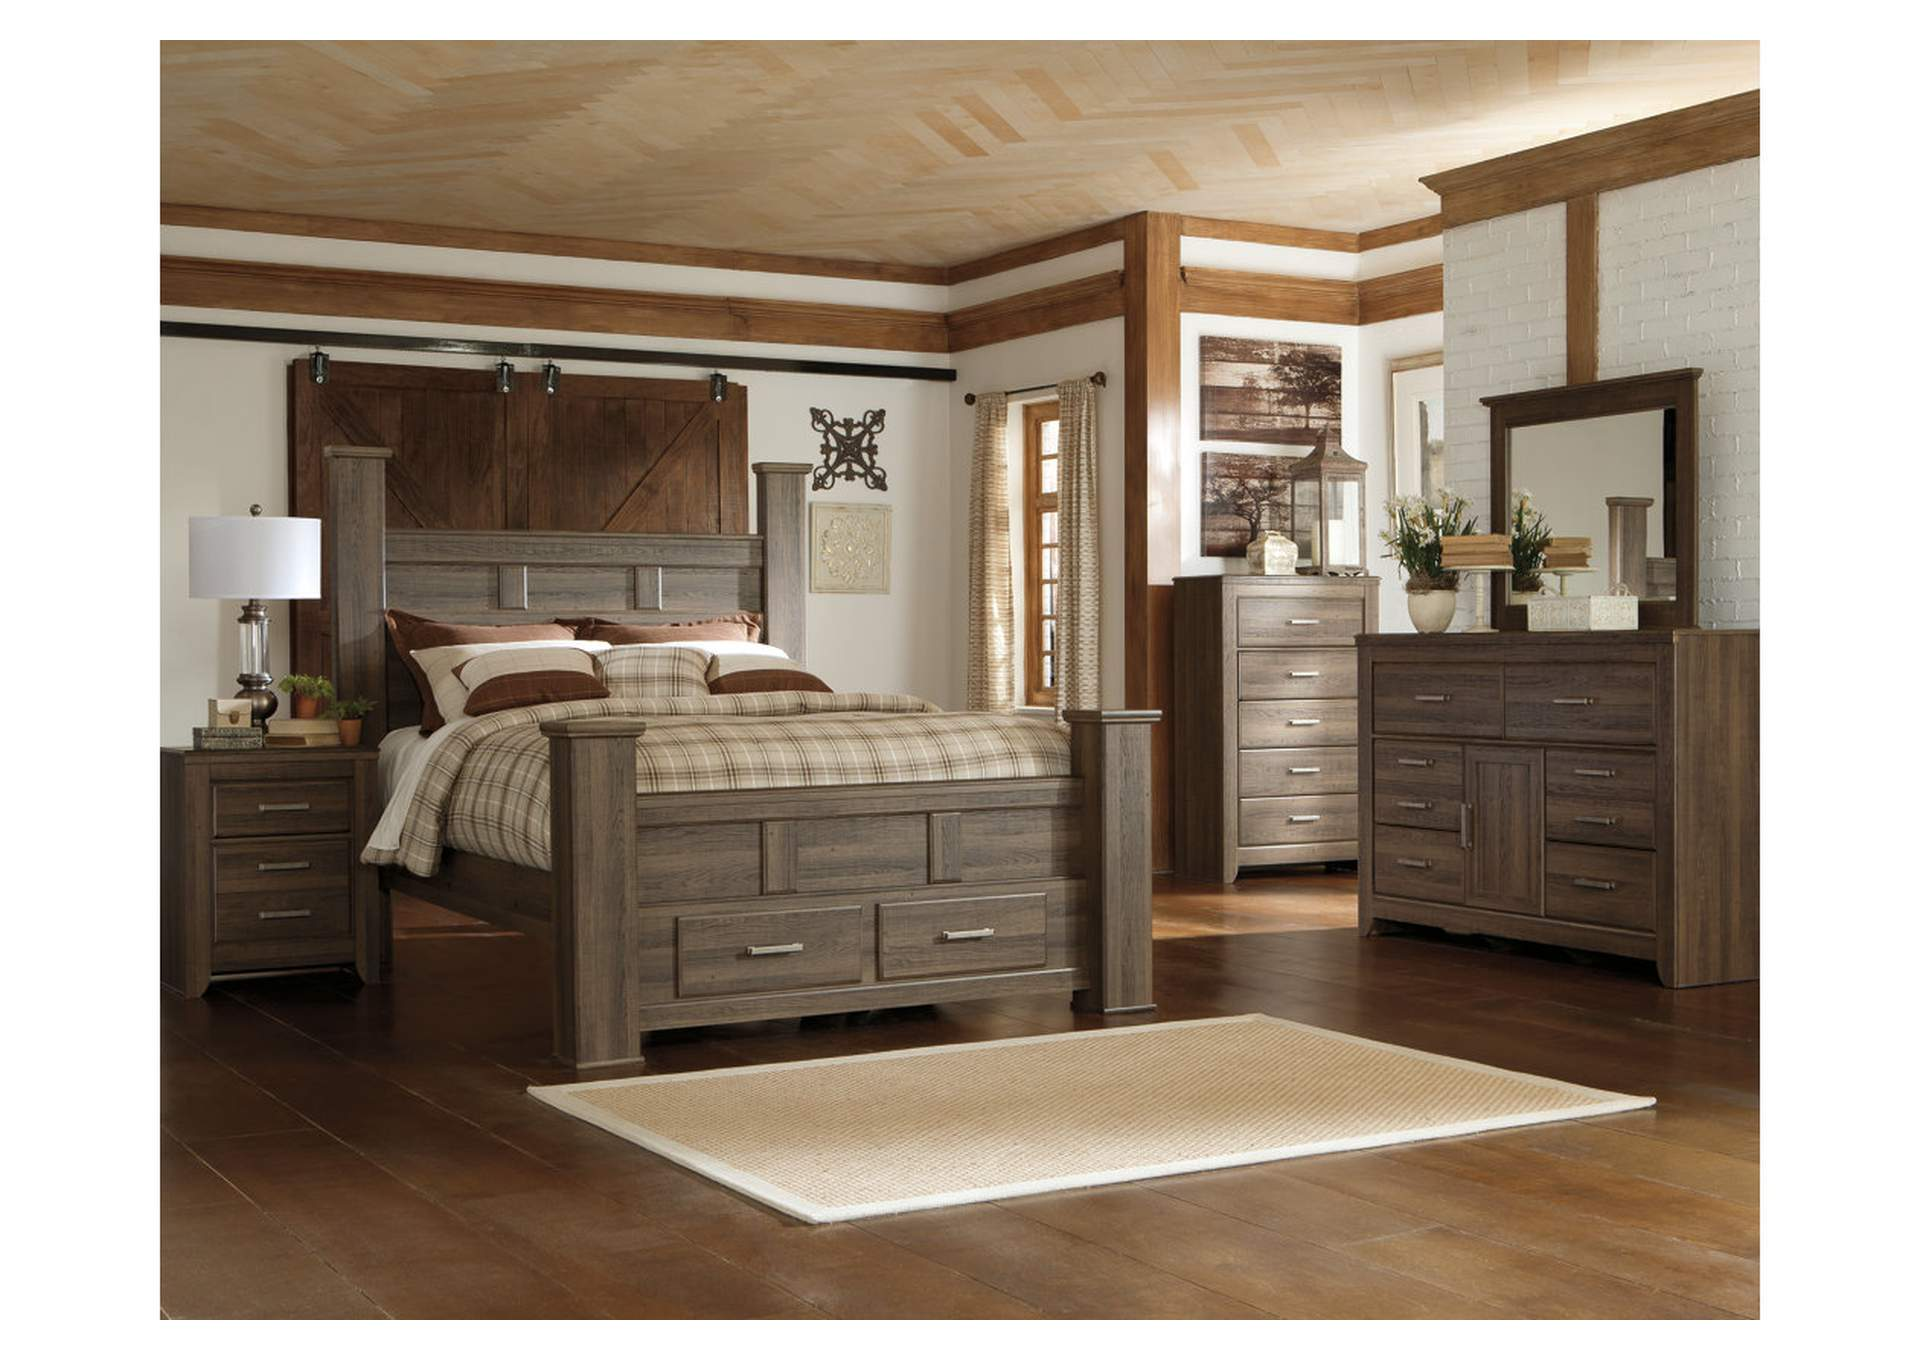 Juararo Queen Poster Storage Bed w/Dresser, Mirror & Drawer Chest,Signature Design By Ashley